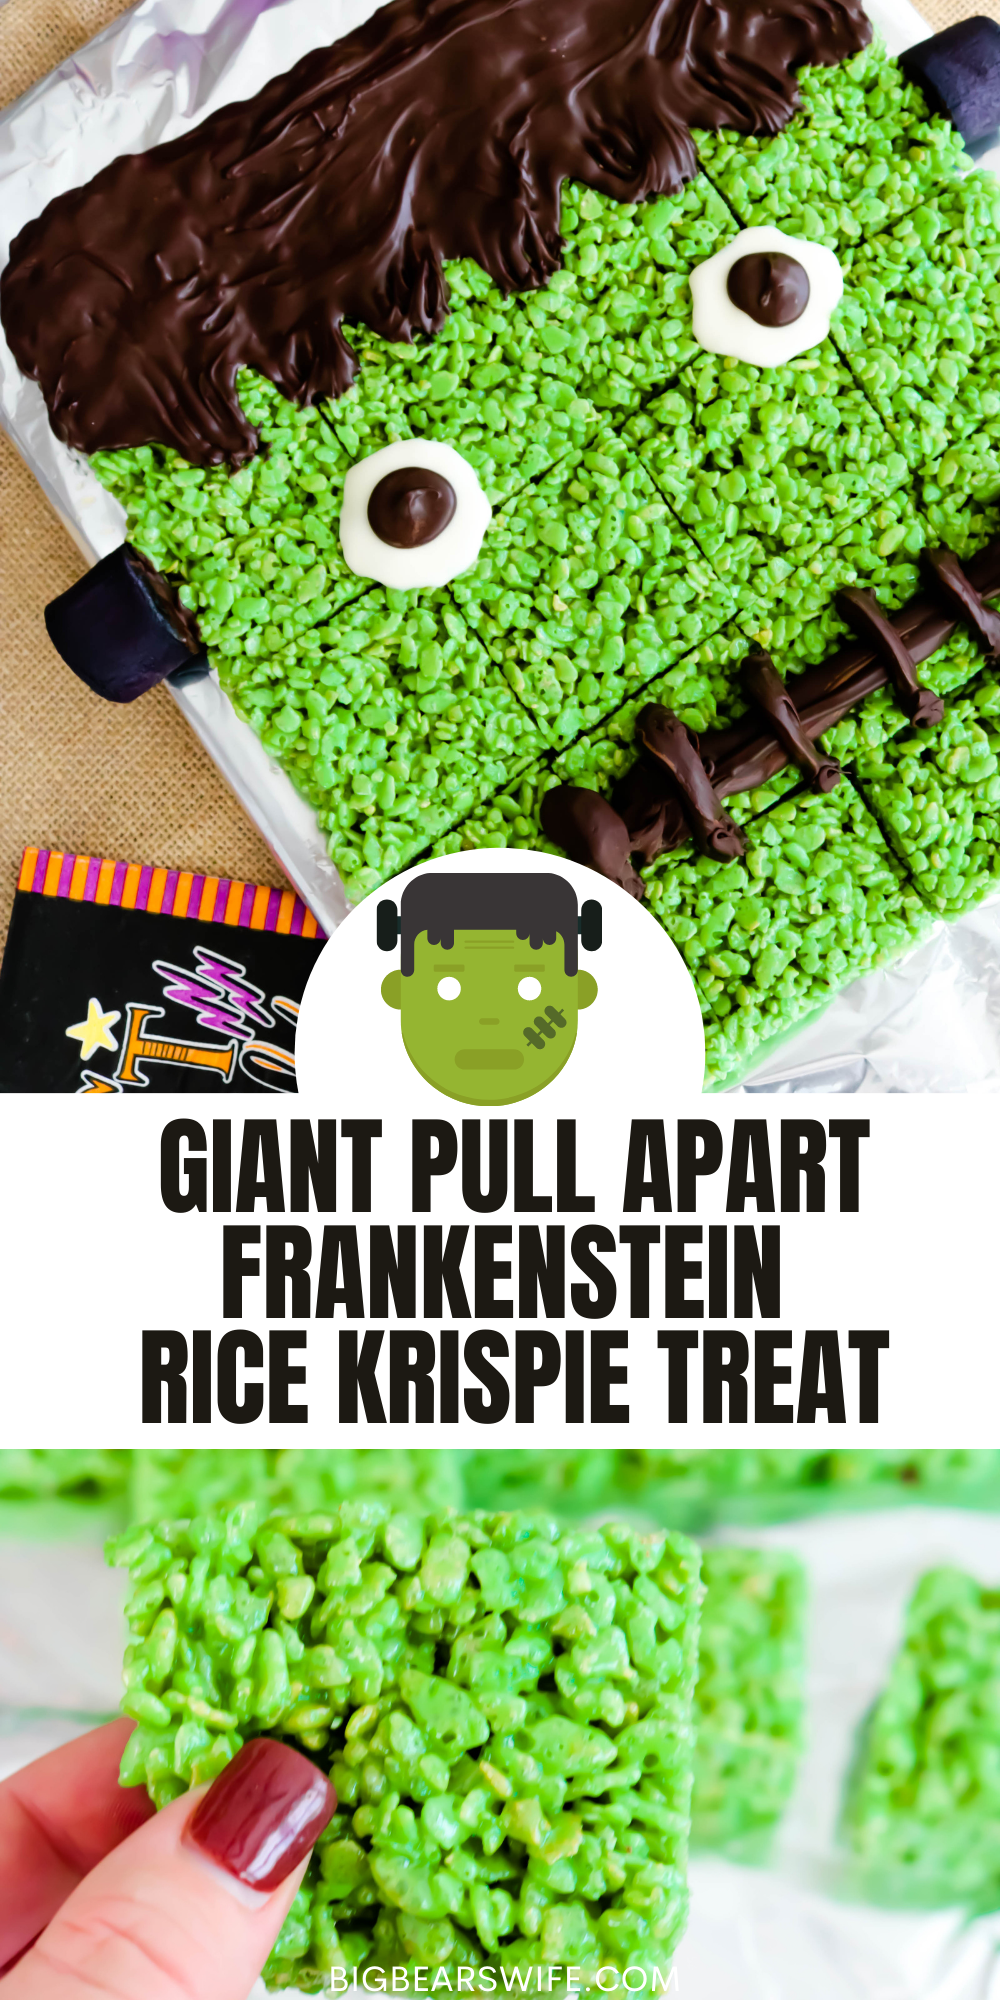 Need a fun Halloween Party dessert? This Giant Pull Apart Frankenstein Rice Krispie Treat is super easy to make and great for a group or Halloween dinner party! Just like my Frankenstein Rice Krispie Treats but on a larger scale for a crowd!